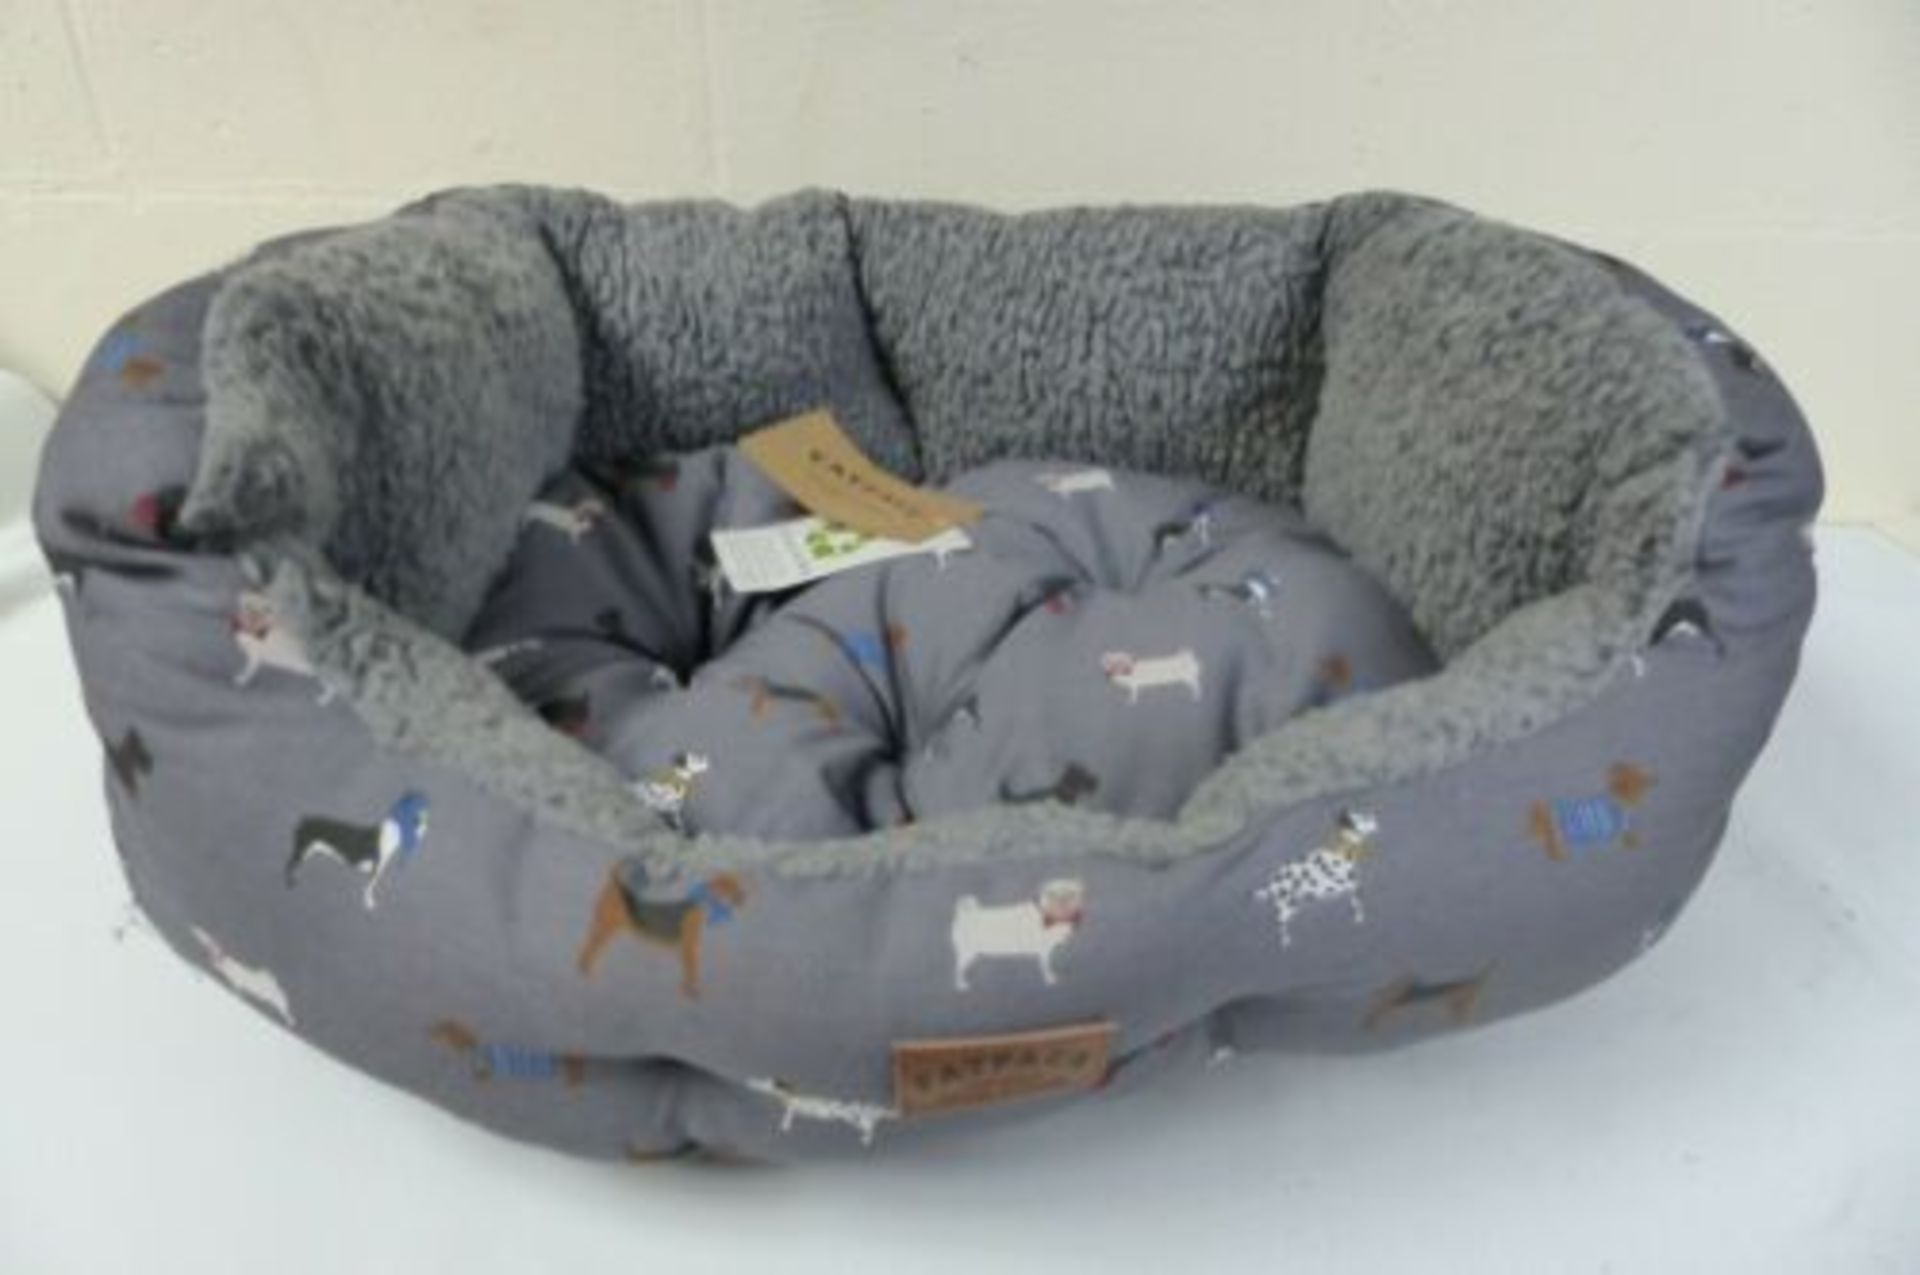 FatFace Marching Dogs Deluxe Slumber Dog Bed M/L - Image 2 of 2